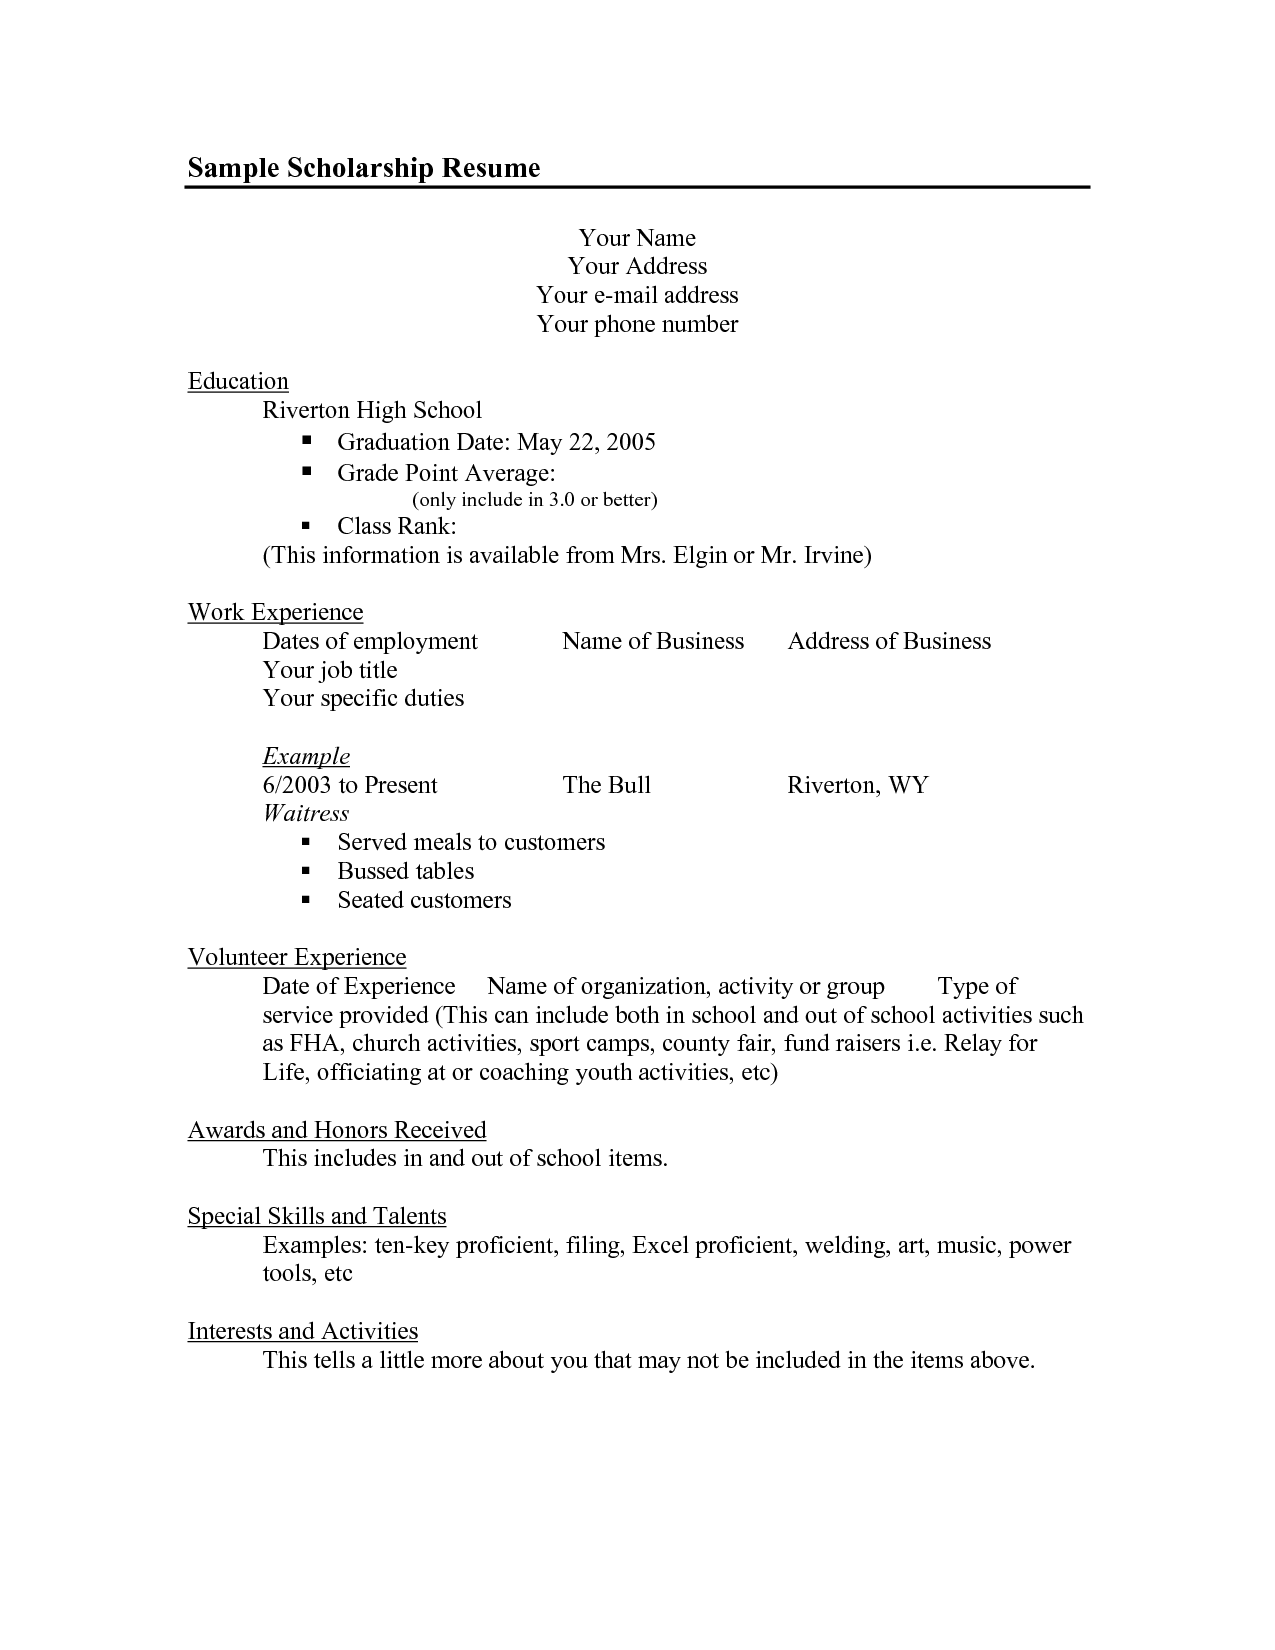 Good High School Resume Scholarship Resume Templates Sample Scholarship Resume